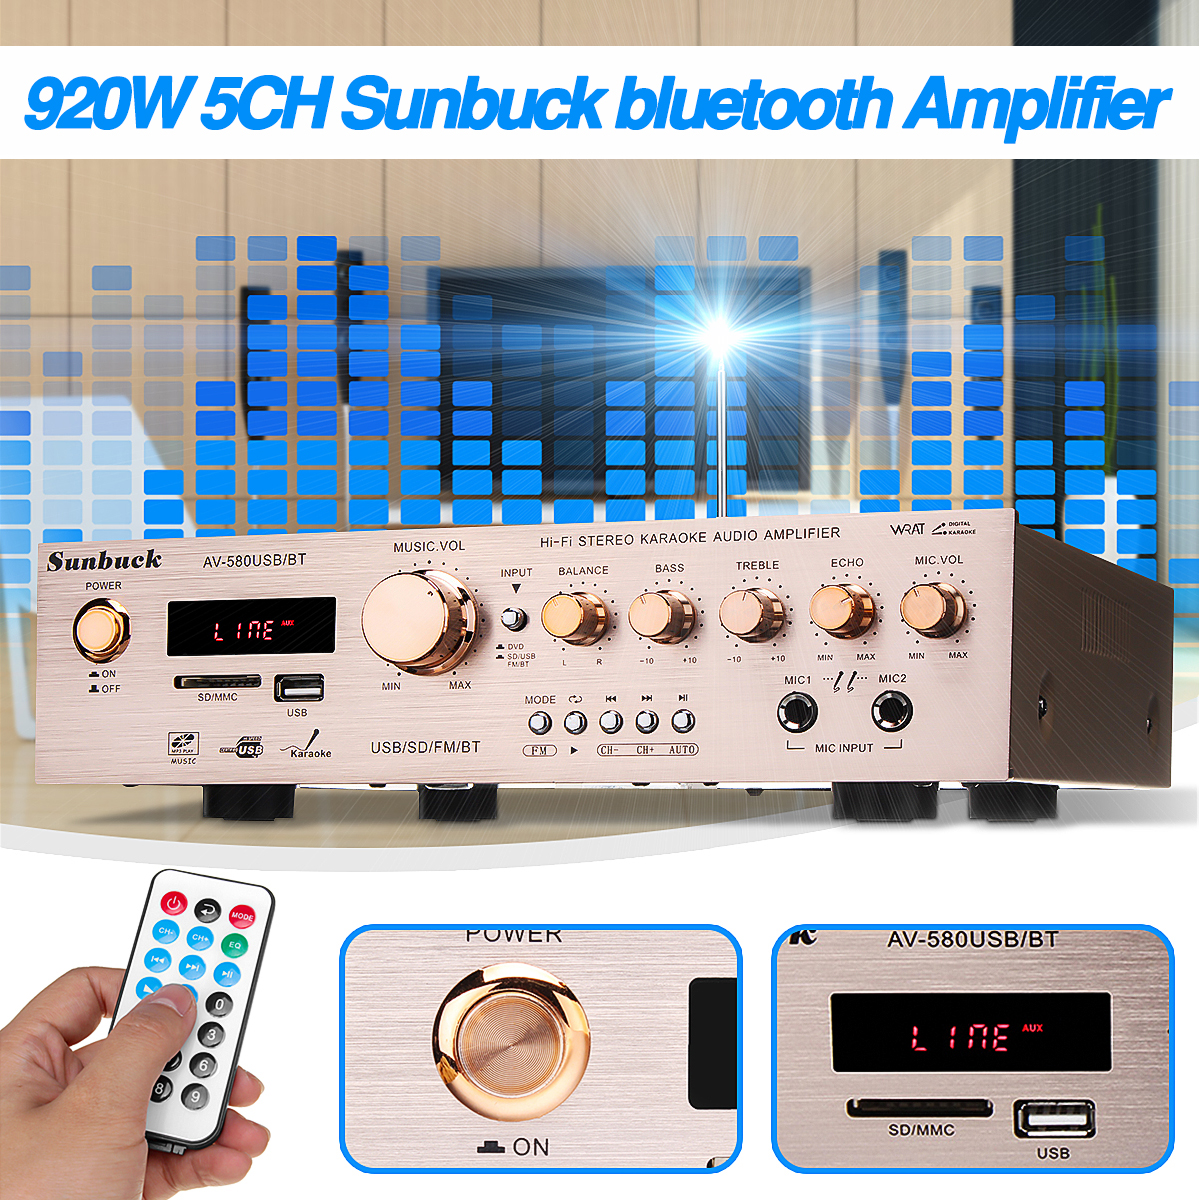 920W 220V 5CH bluetooth <font><b>HiFi</b></font> Stereo AV Surround <font><b>Amplifier</b></font> FM Karaoke Cinema Home Home Theater <font><b>Amplifiers</b></font> image